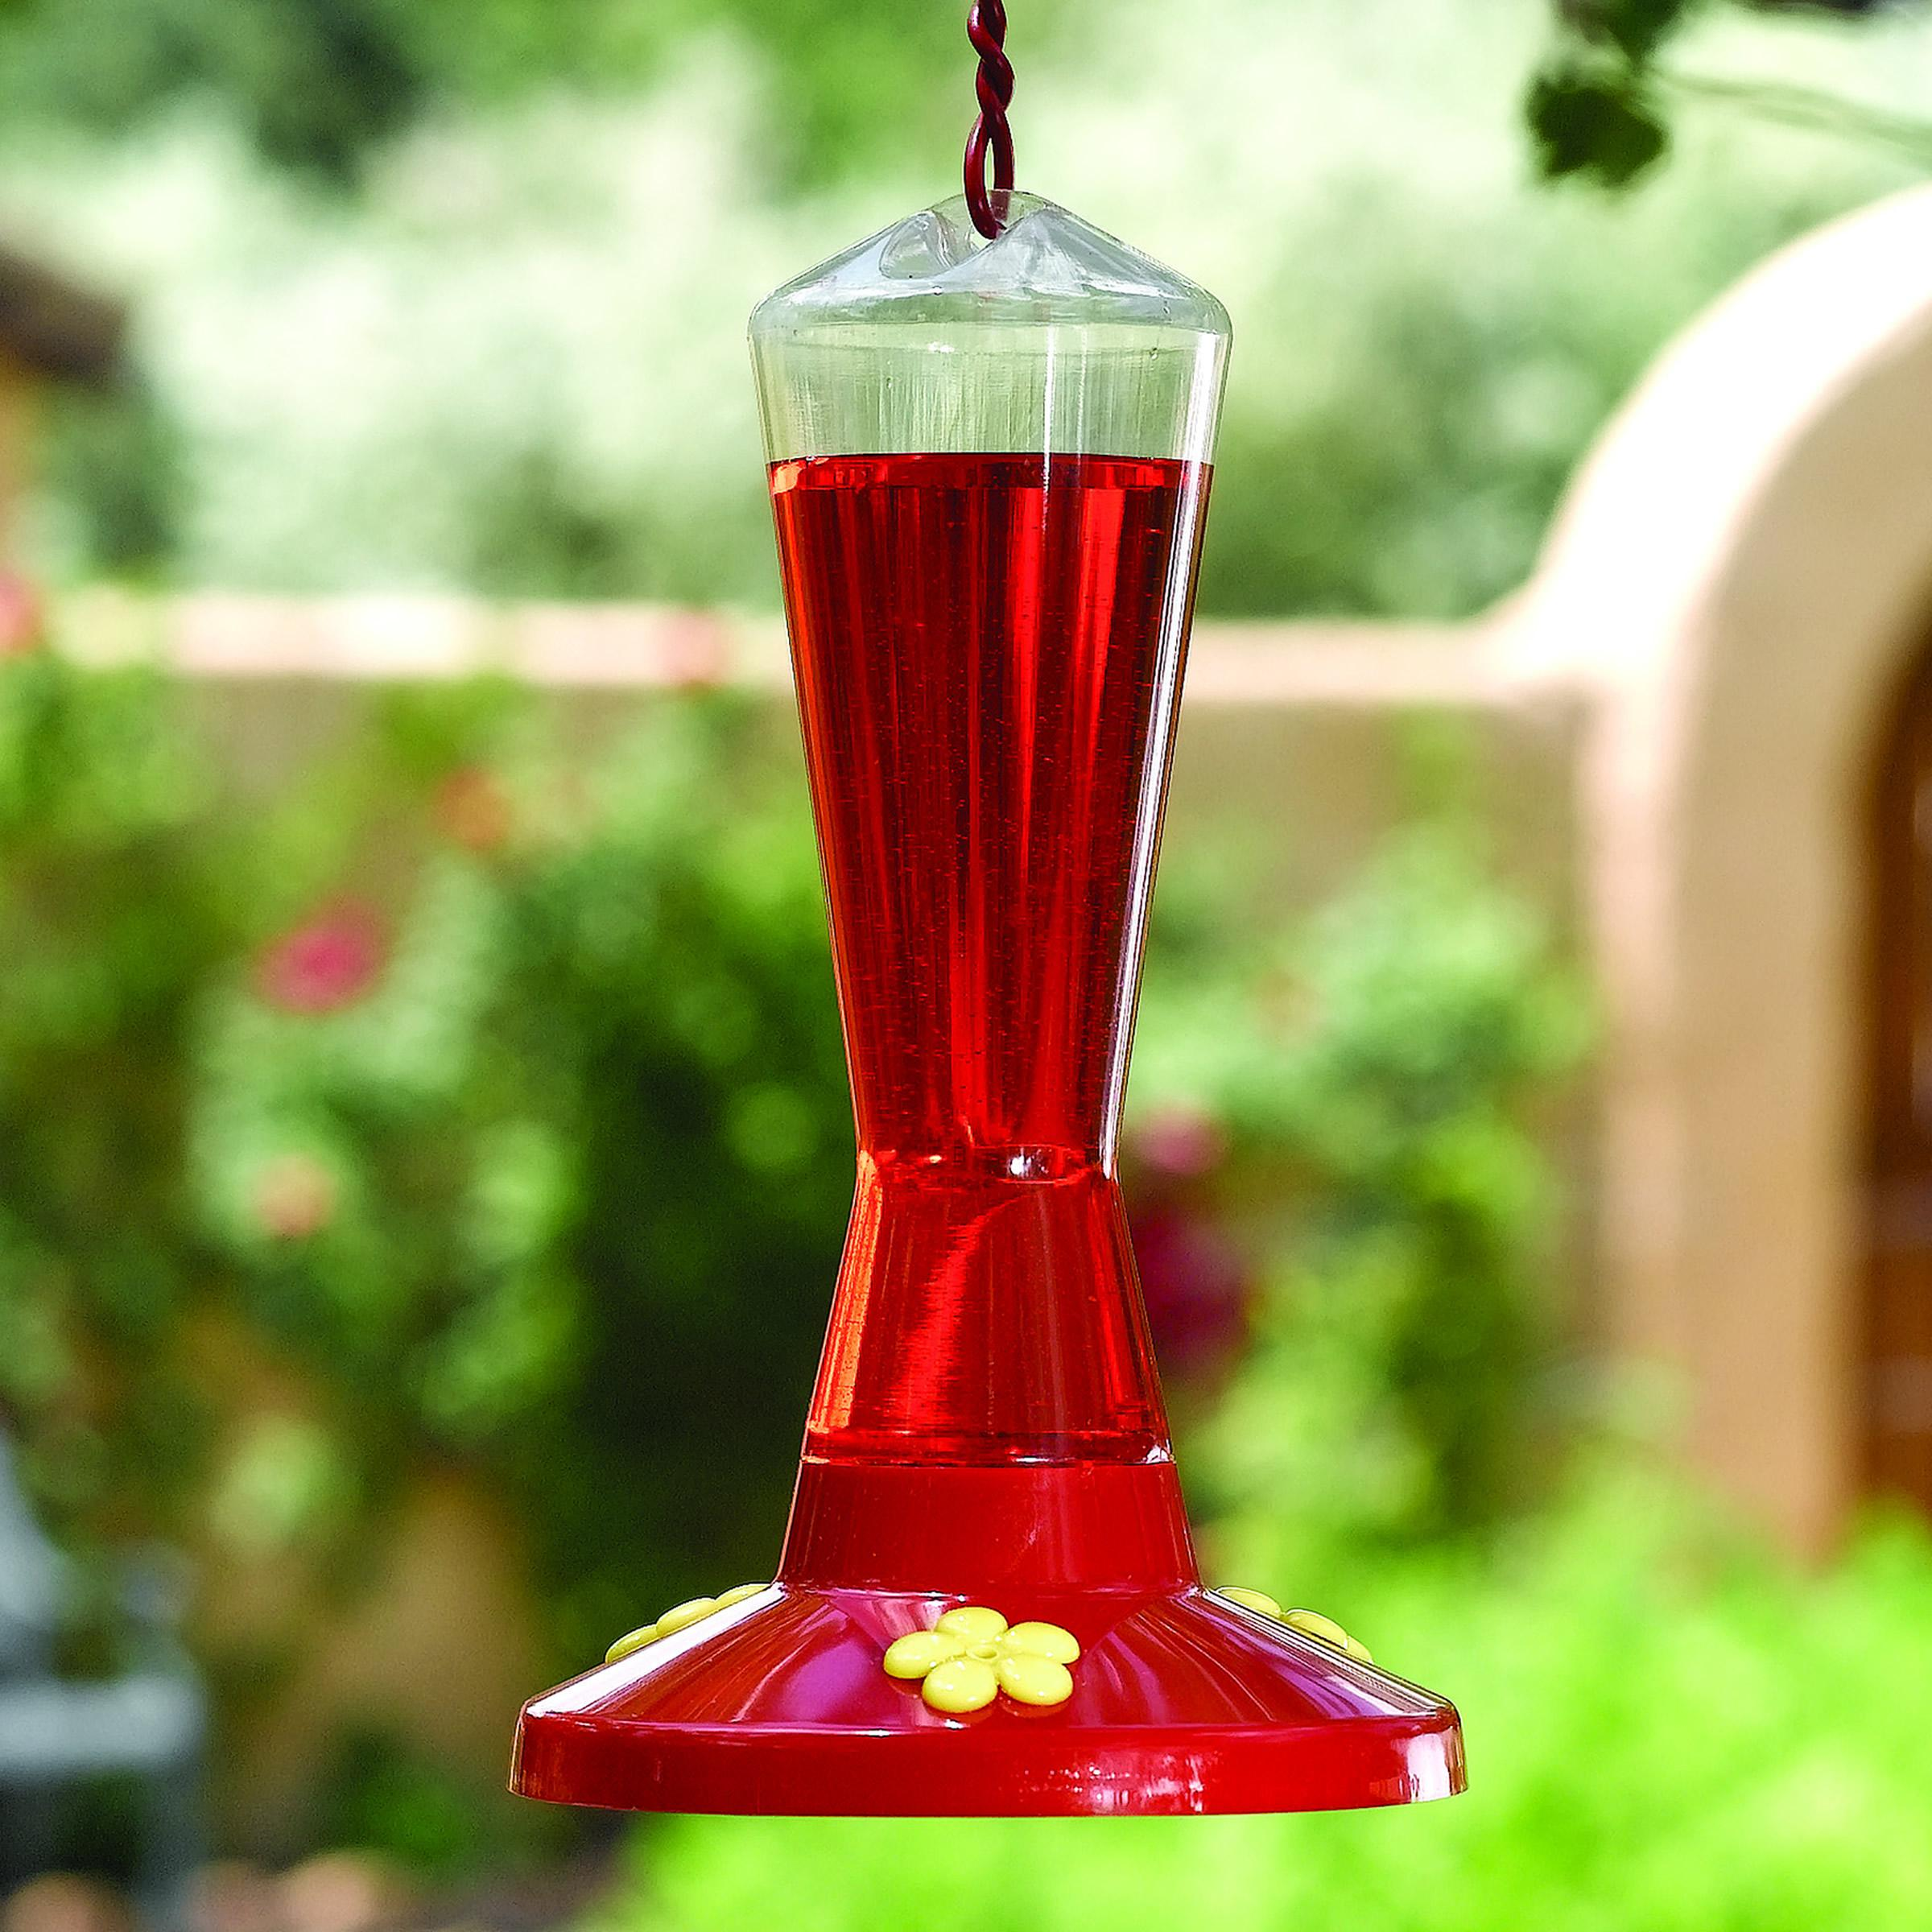 feeders display cfm oz hummingbird gs product wild wbird humingbird feeder prod glass bird